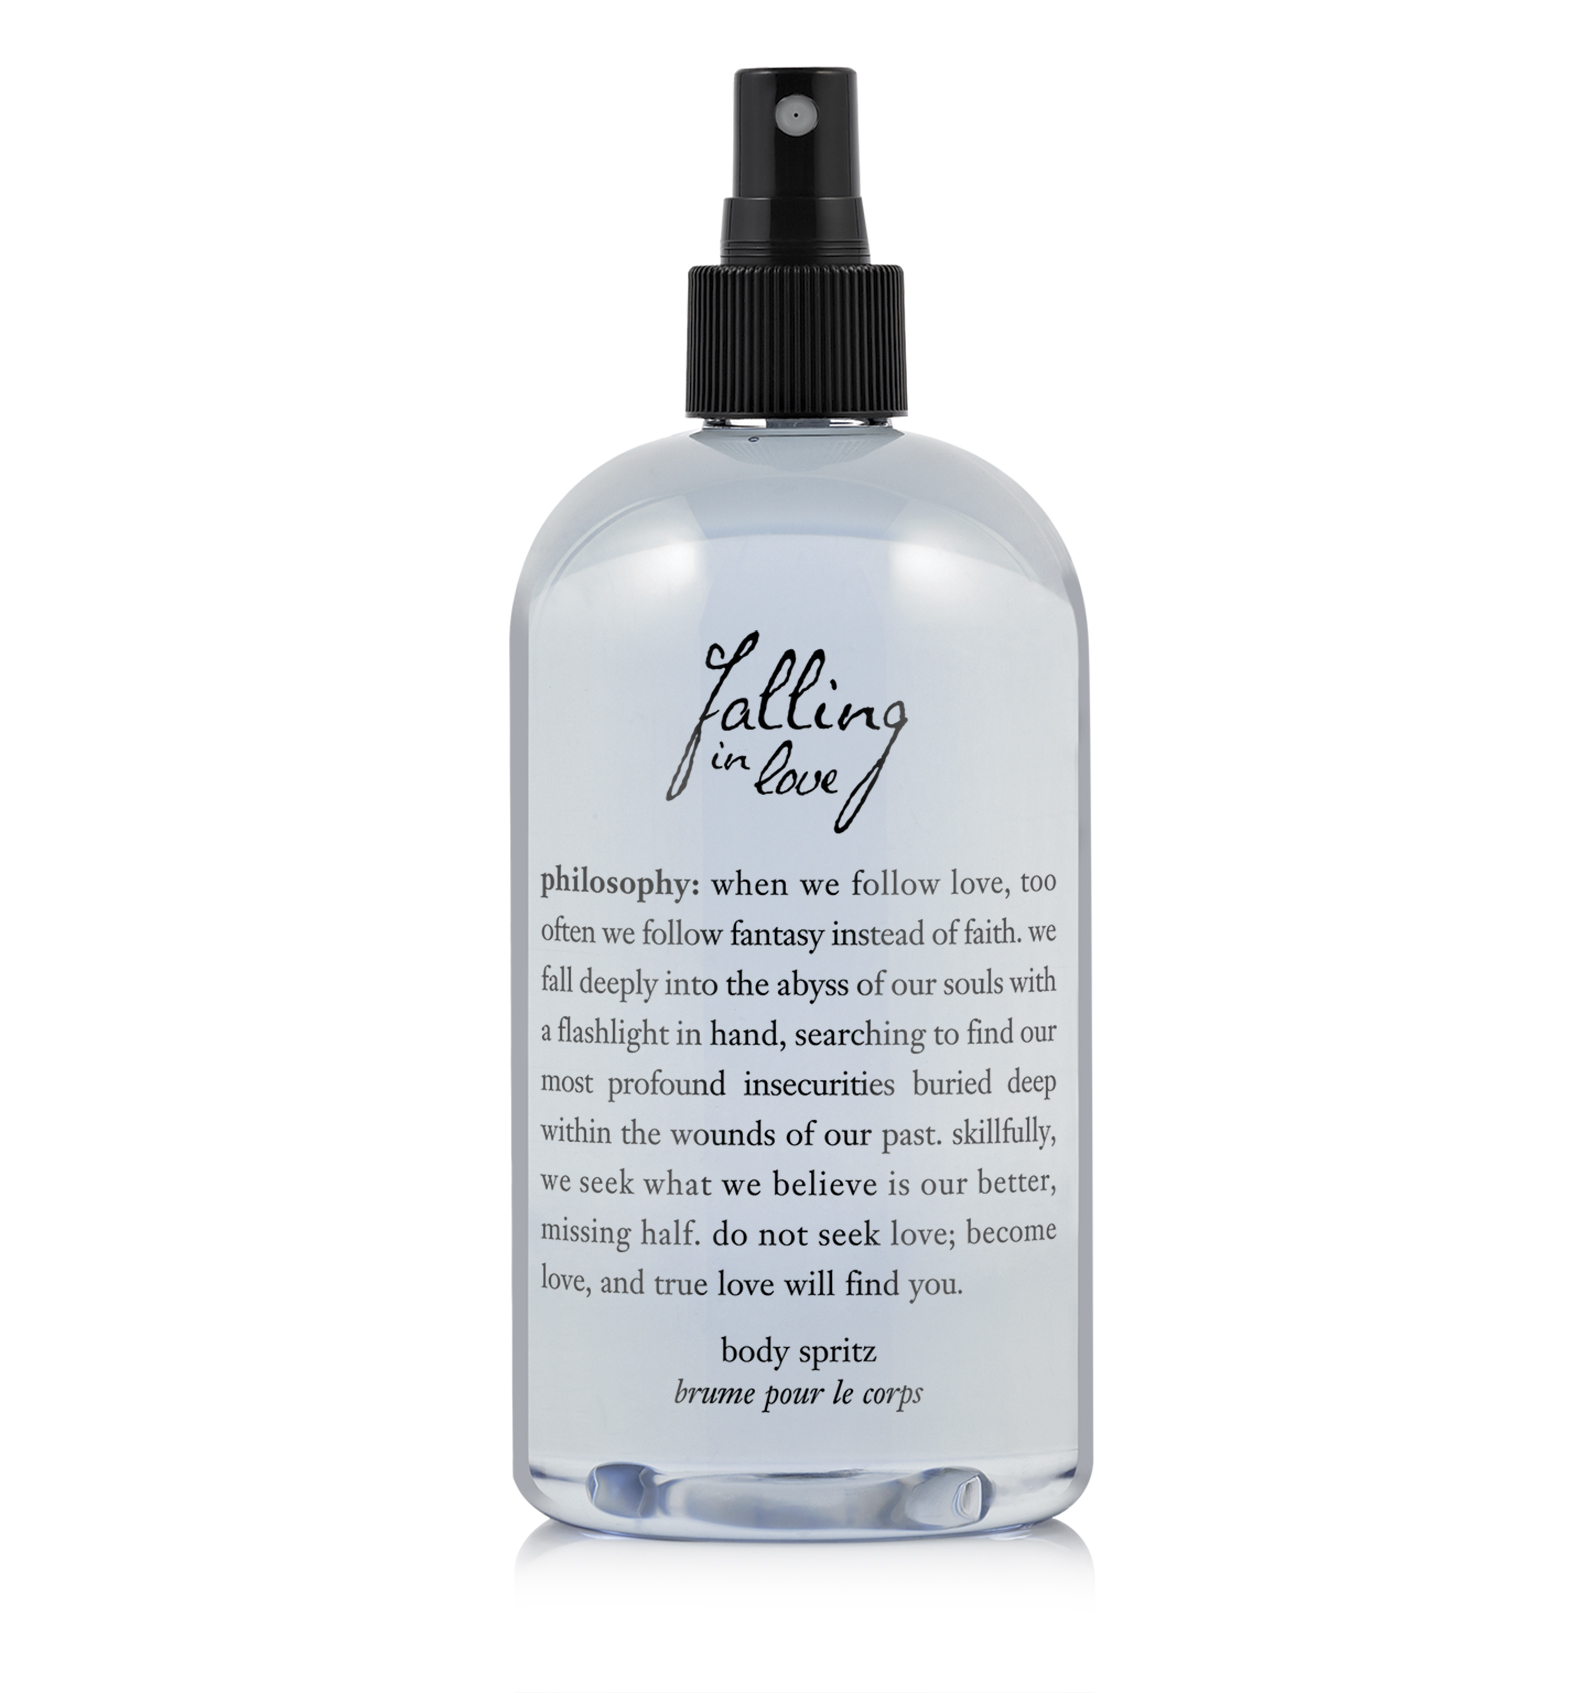 philosophy, falling in love body spritz